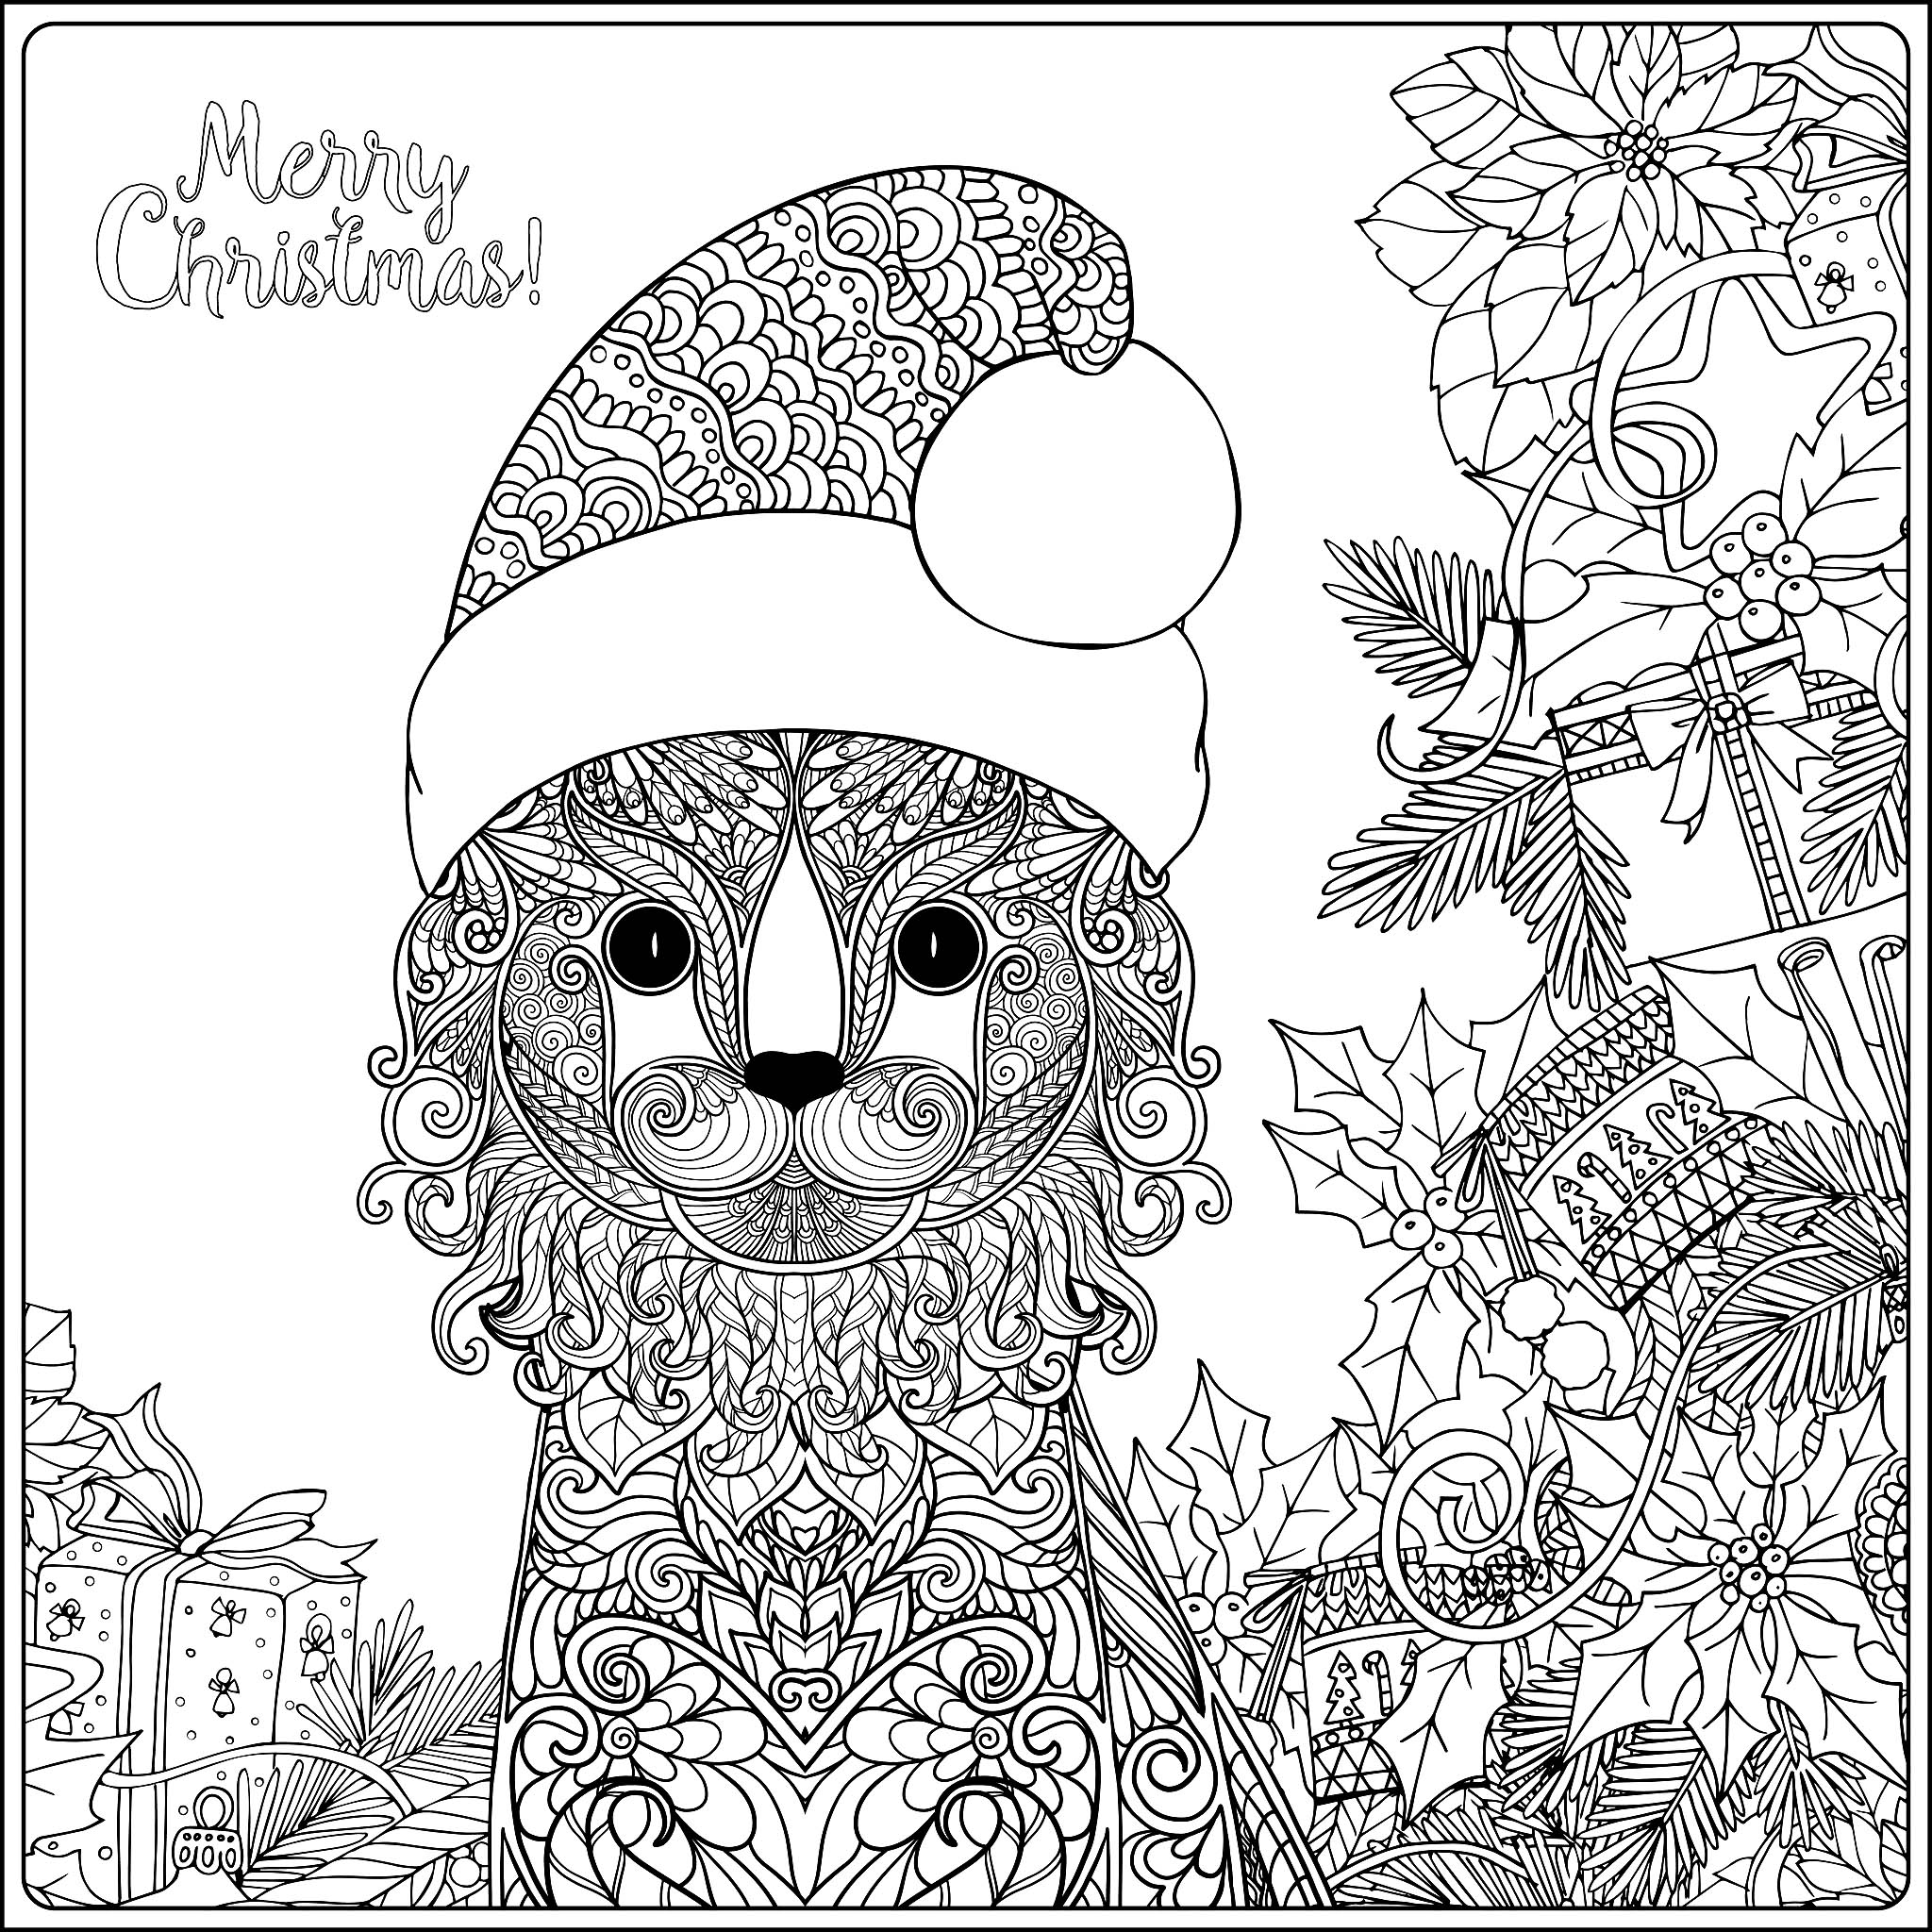 a squared coloring page with a cute christmas cat full of elegant paterns the